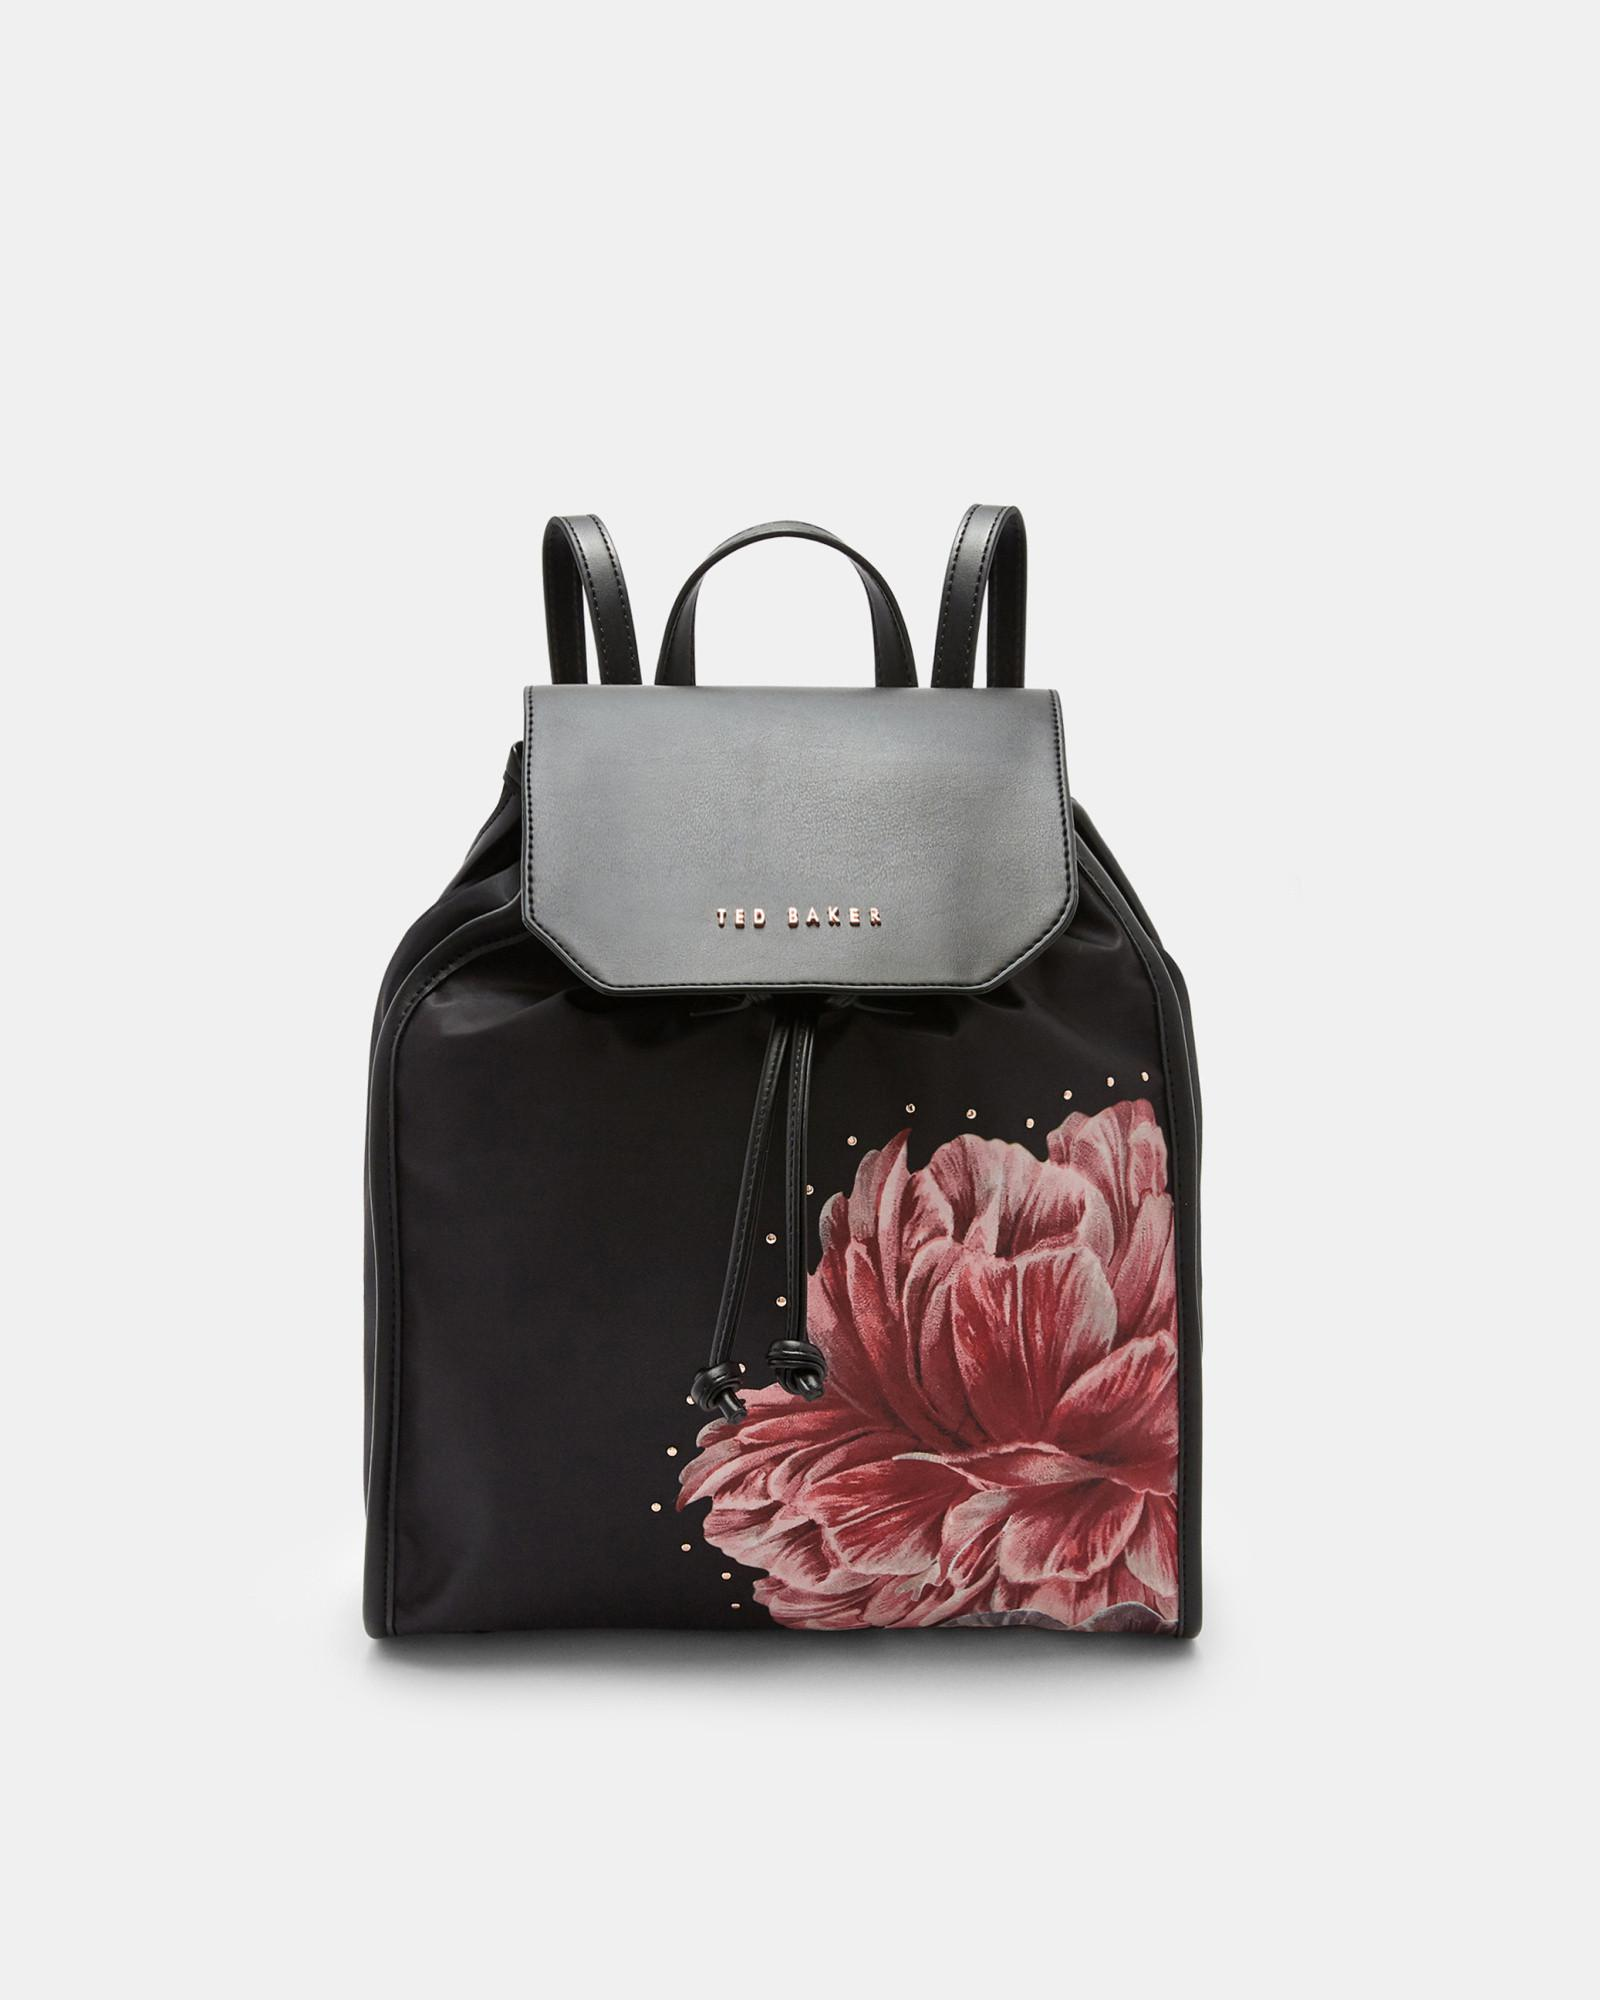 3d7dca8a0 Ted Baker Tranquility Drawstring Backpack in Black - Lyst